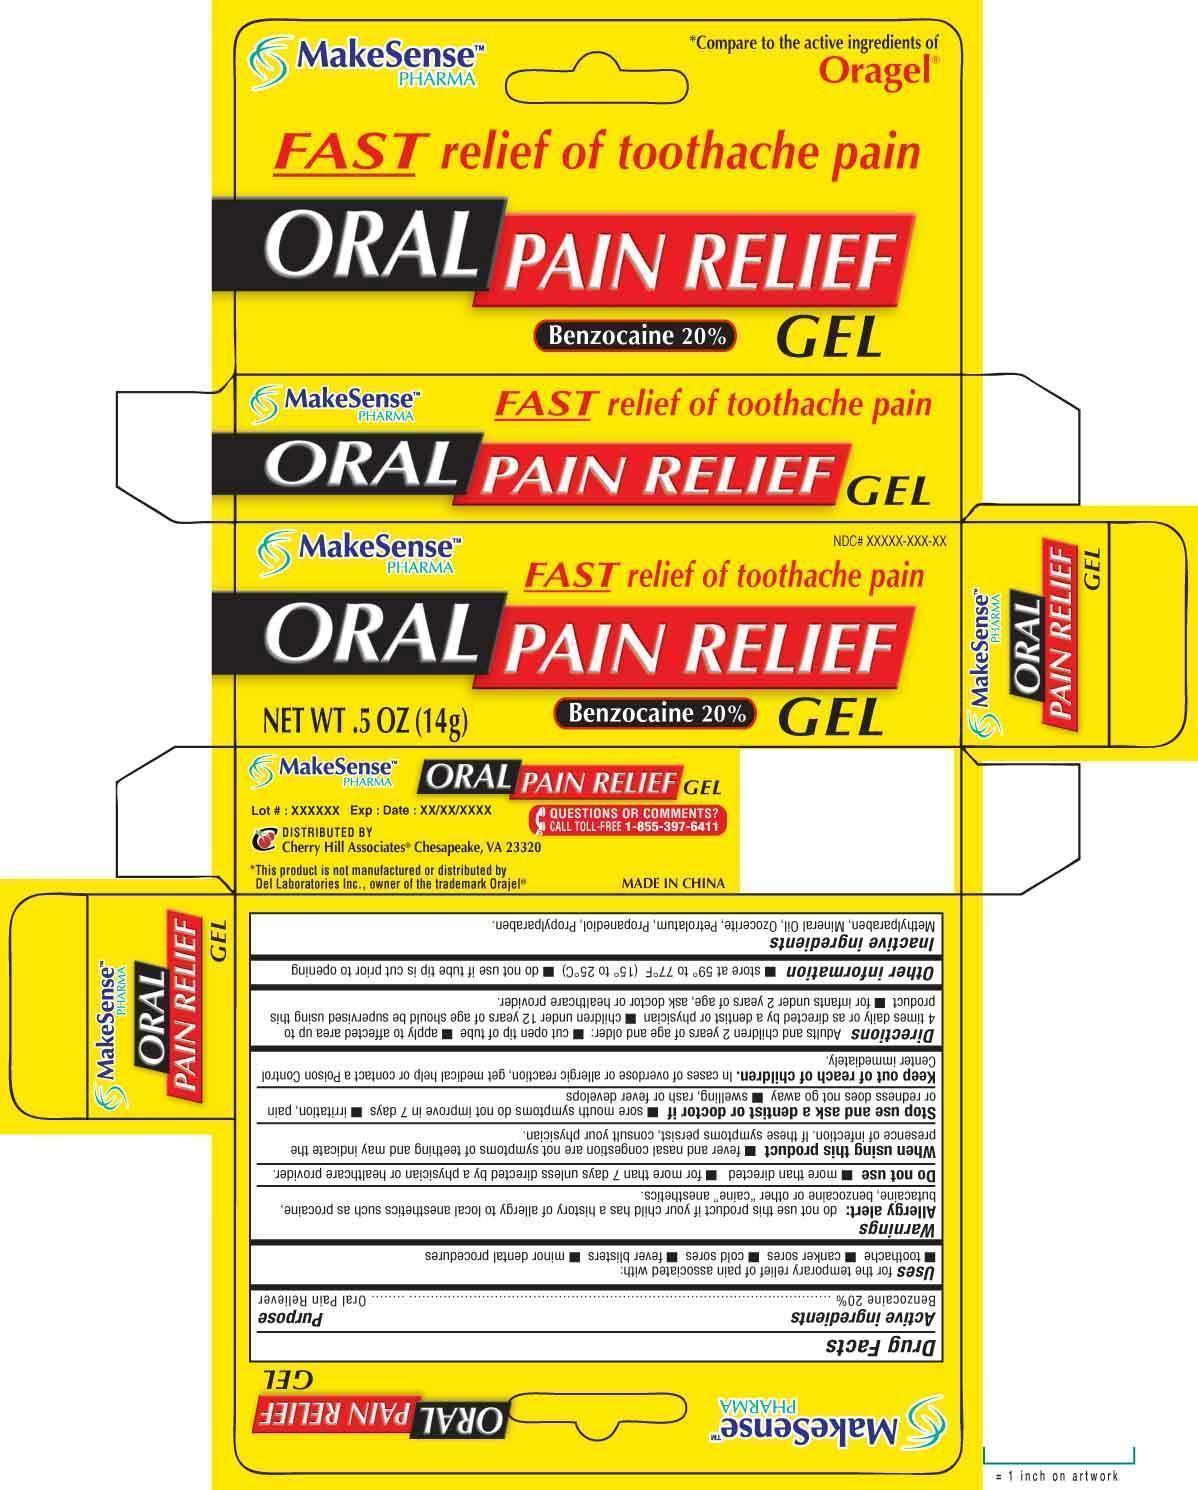 Makesense Pain Relief (Benzocaine) Gel [Cherry Hill Sales Co]